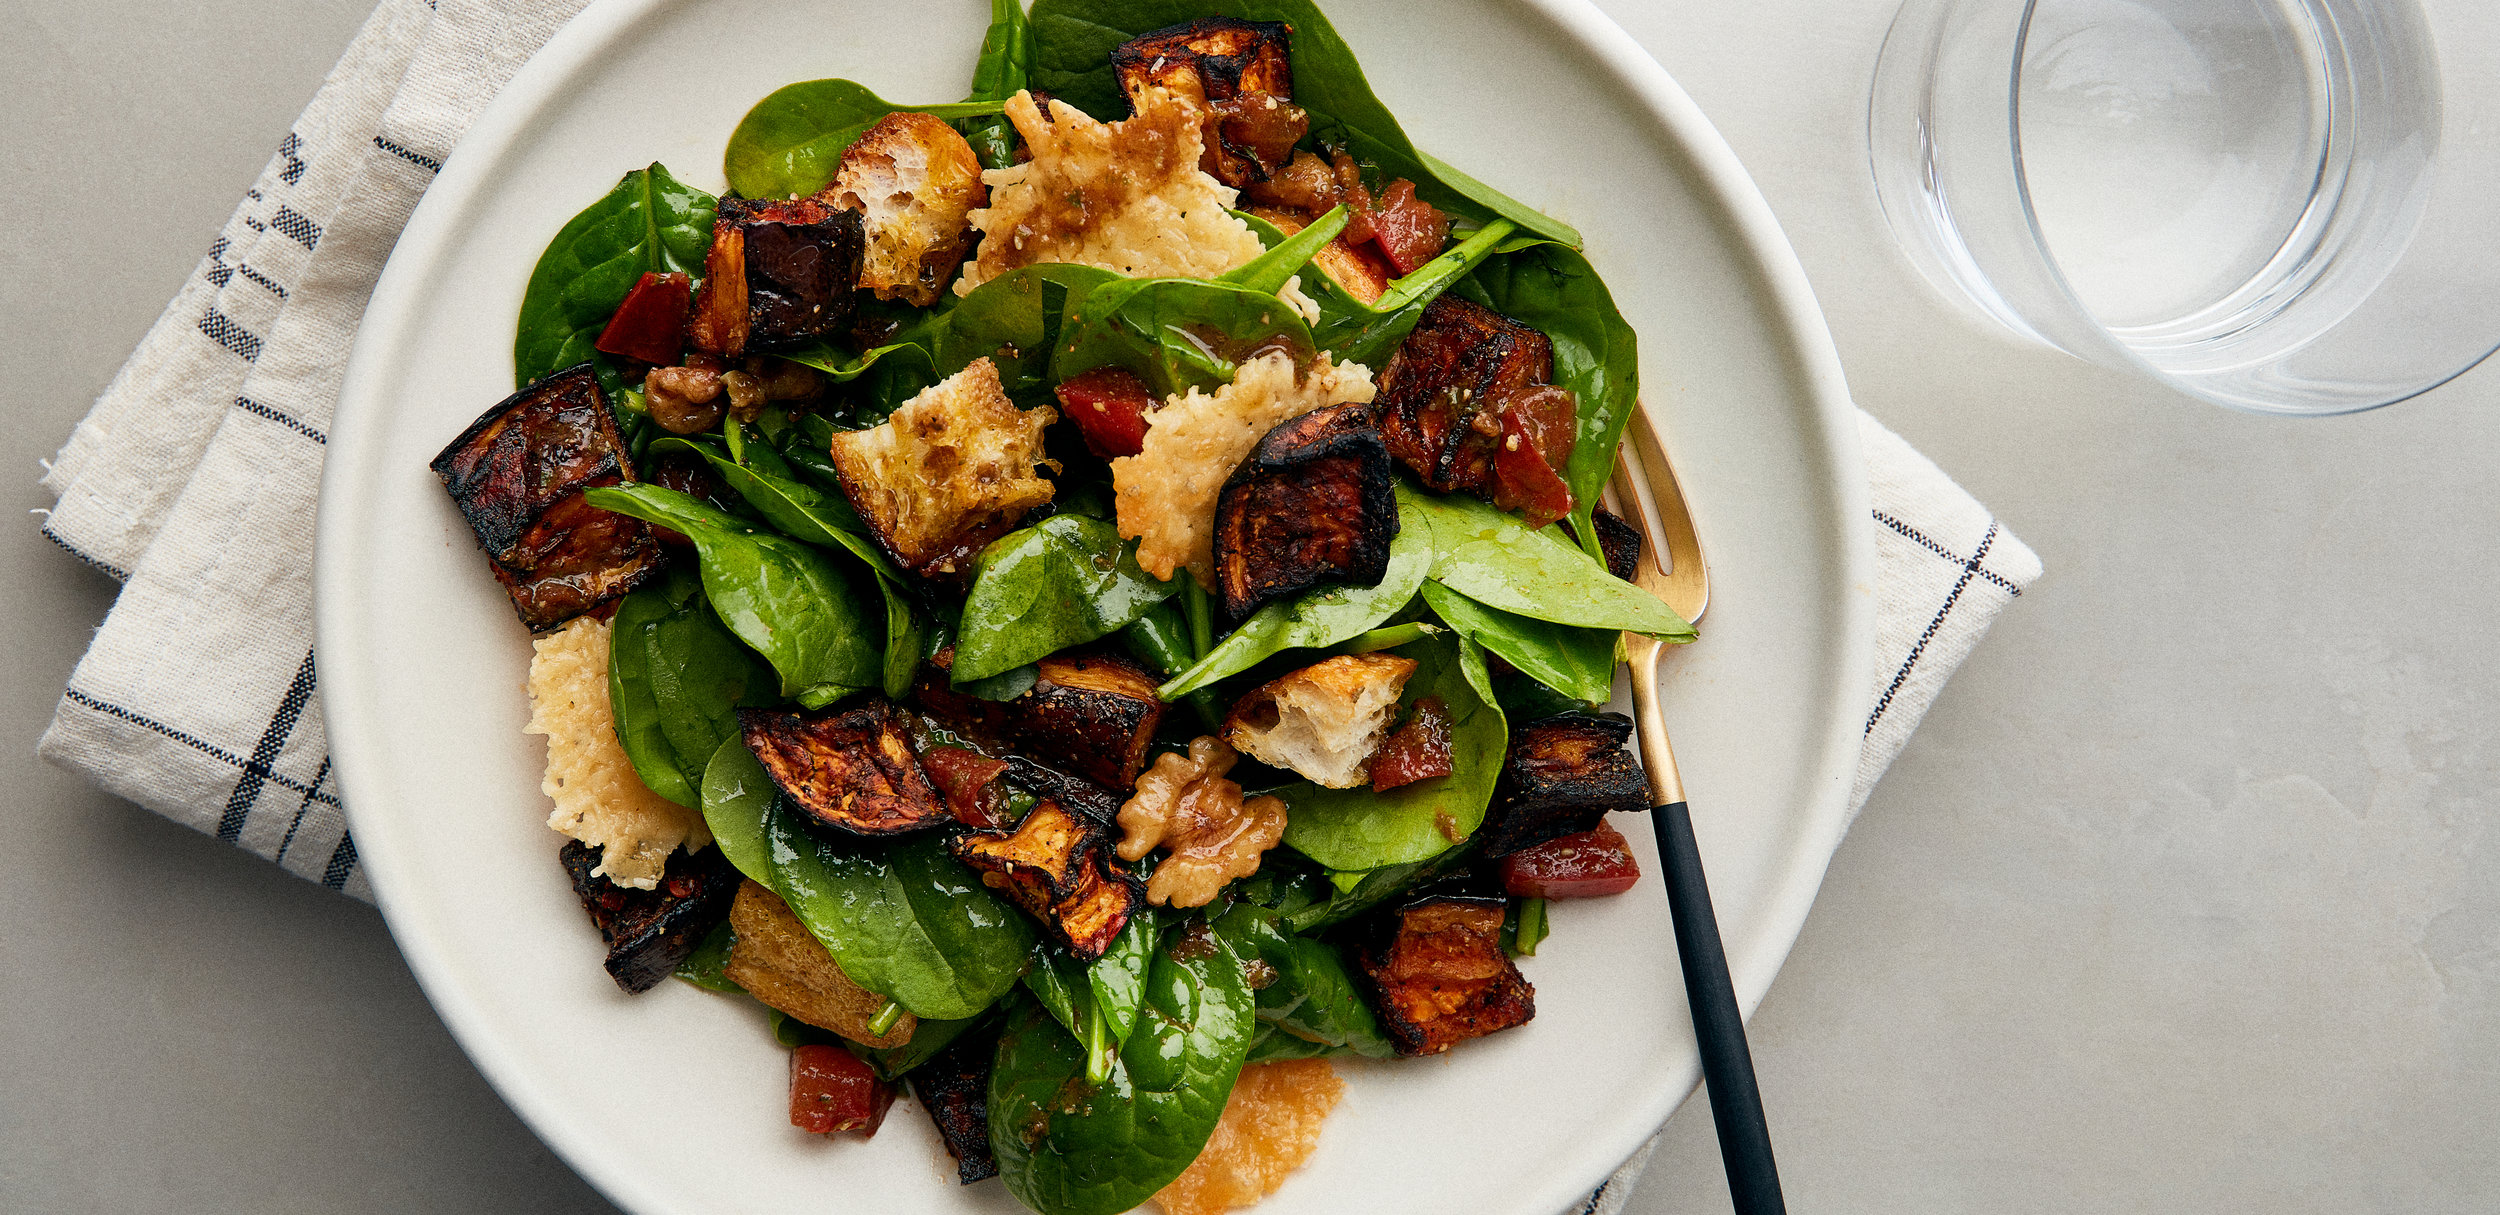 Roasted Eggplant and Tomato Salad With Frico, Herbs, and Rustic Croutons — 0032 — HERO (1).jpg